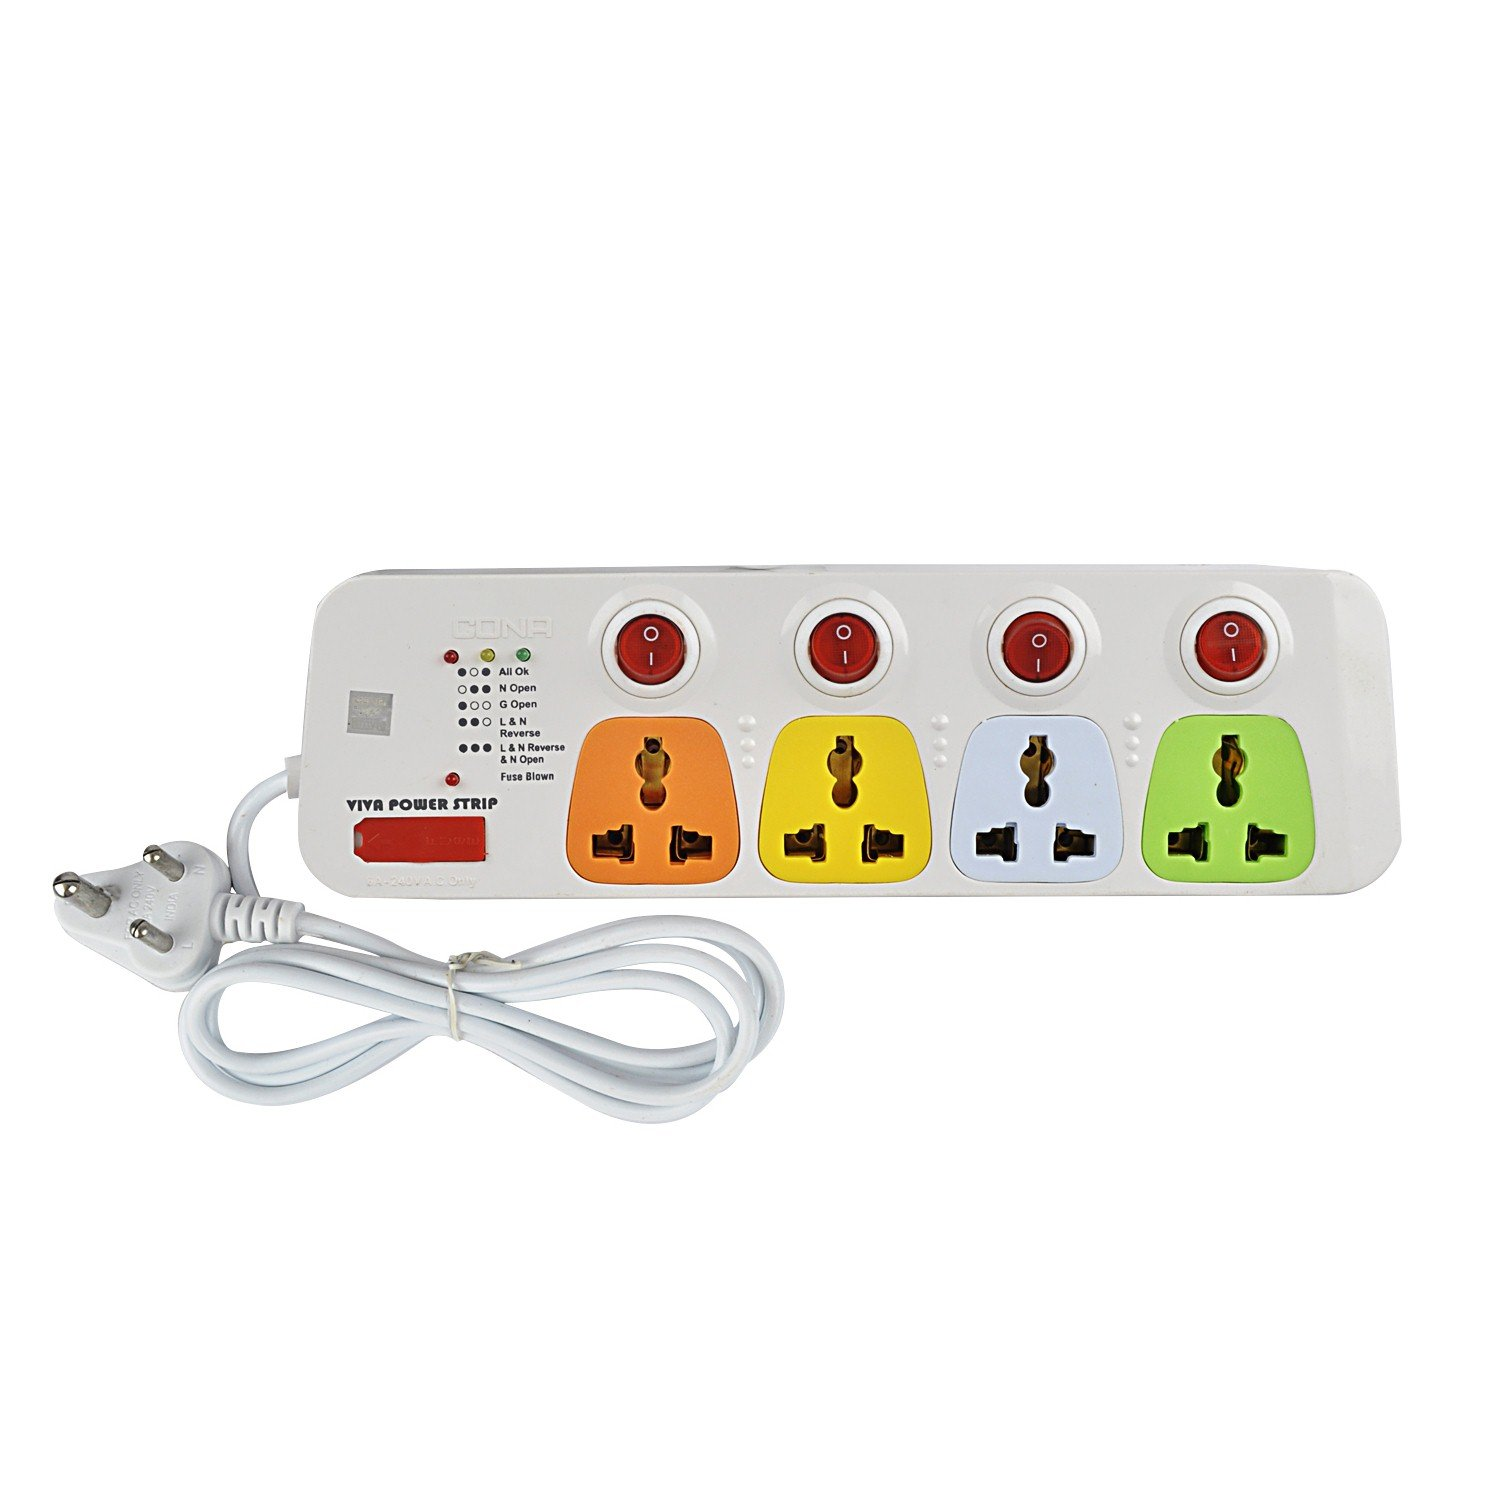 Buy Cona Smyle Viva 4 Power Strip 5 Meter Wire Online At Low House Wiring Questions Prices In India